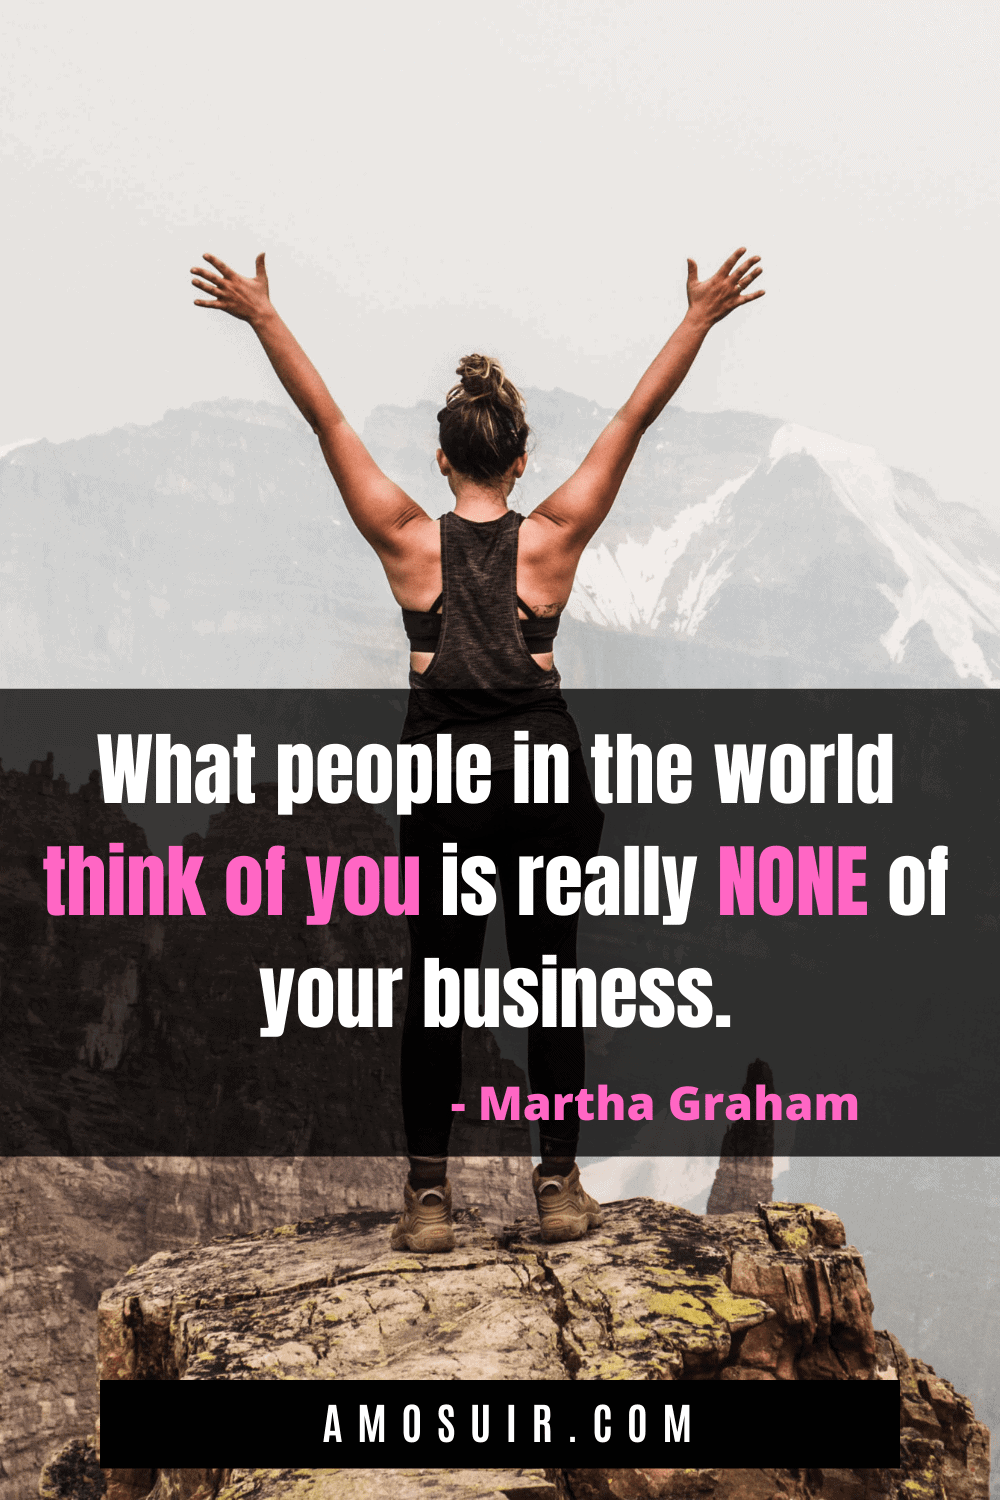 anxiety quotes - what people think of you is really none of your business